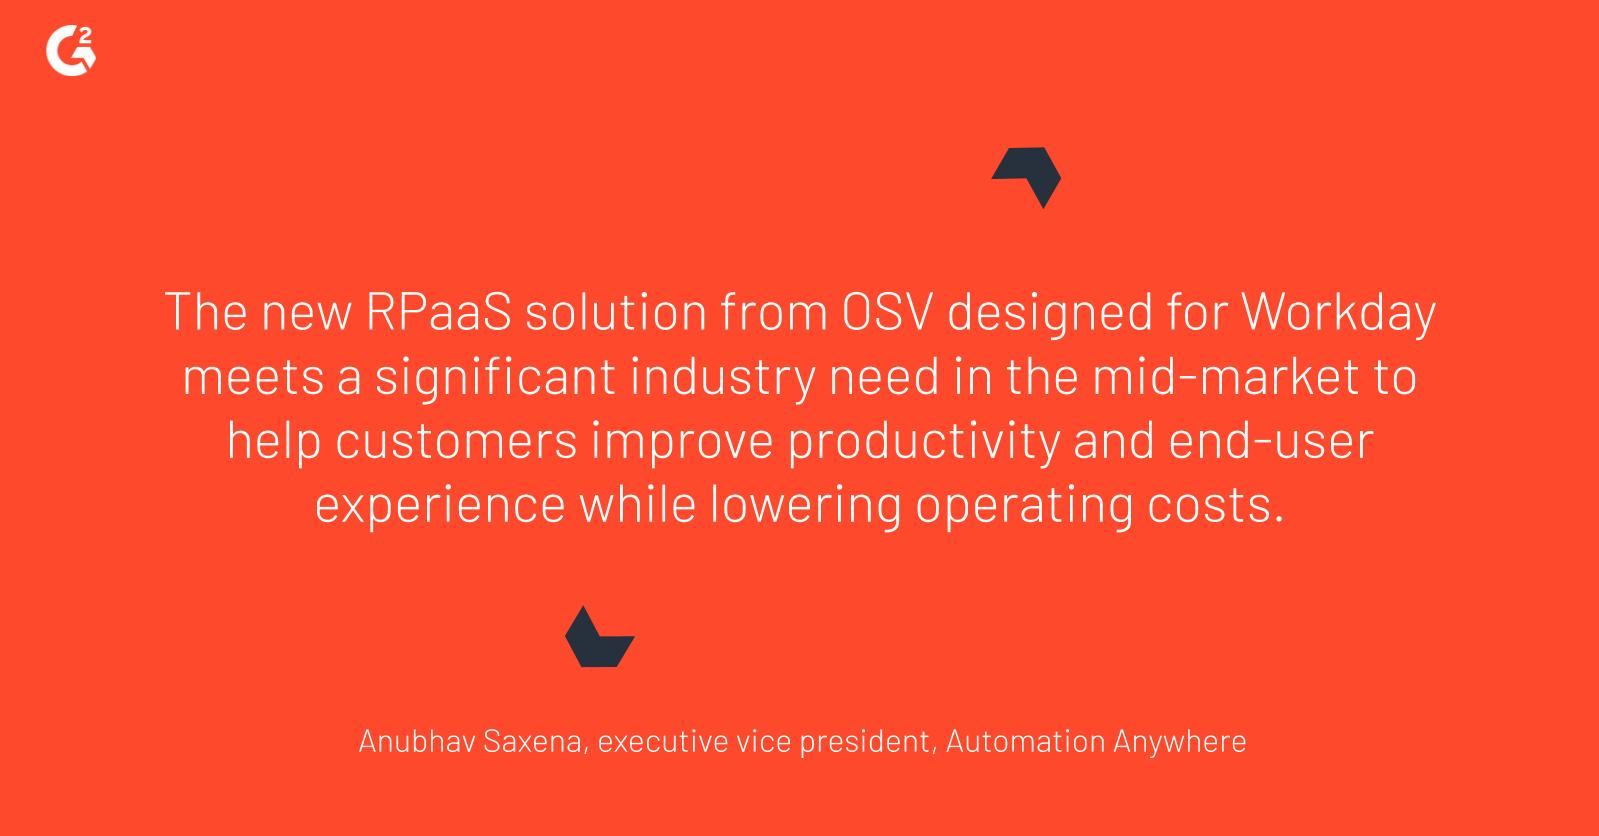 Anubhav Saxena, executive vice president of Automation Anywhere, talks about the new RPaaS solution from OSV